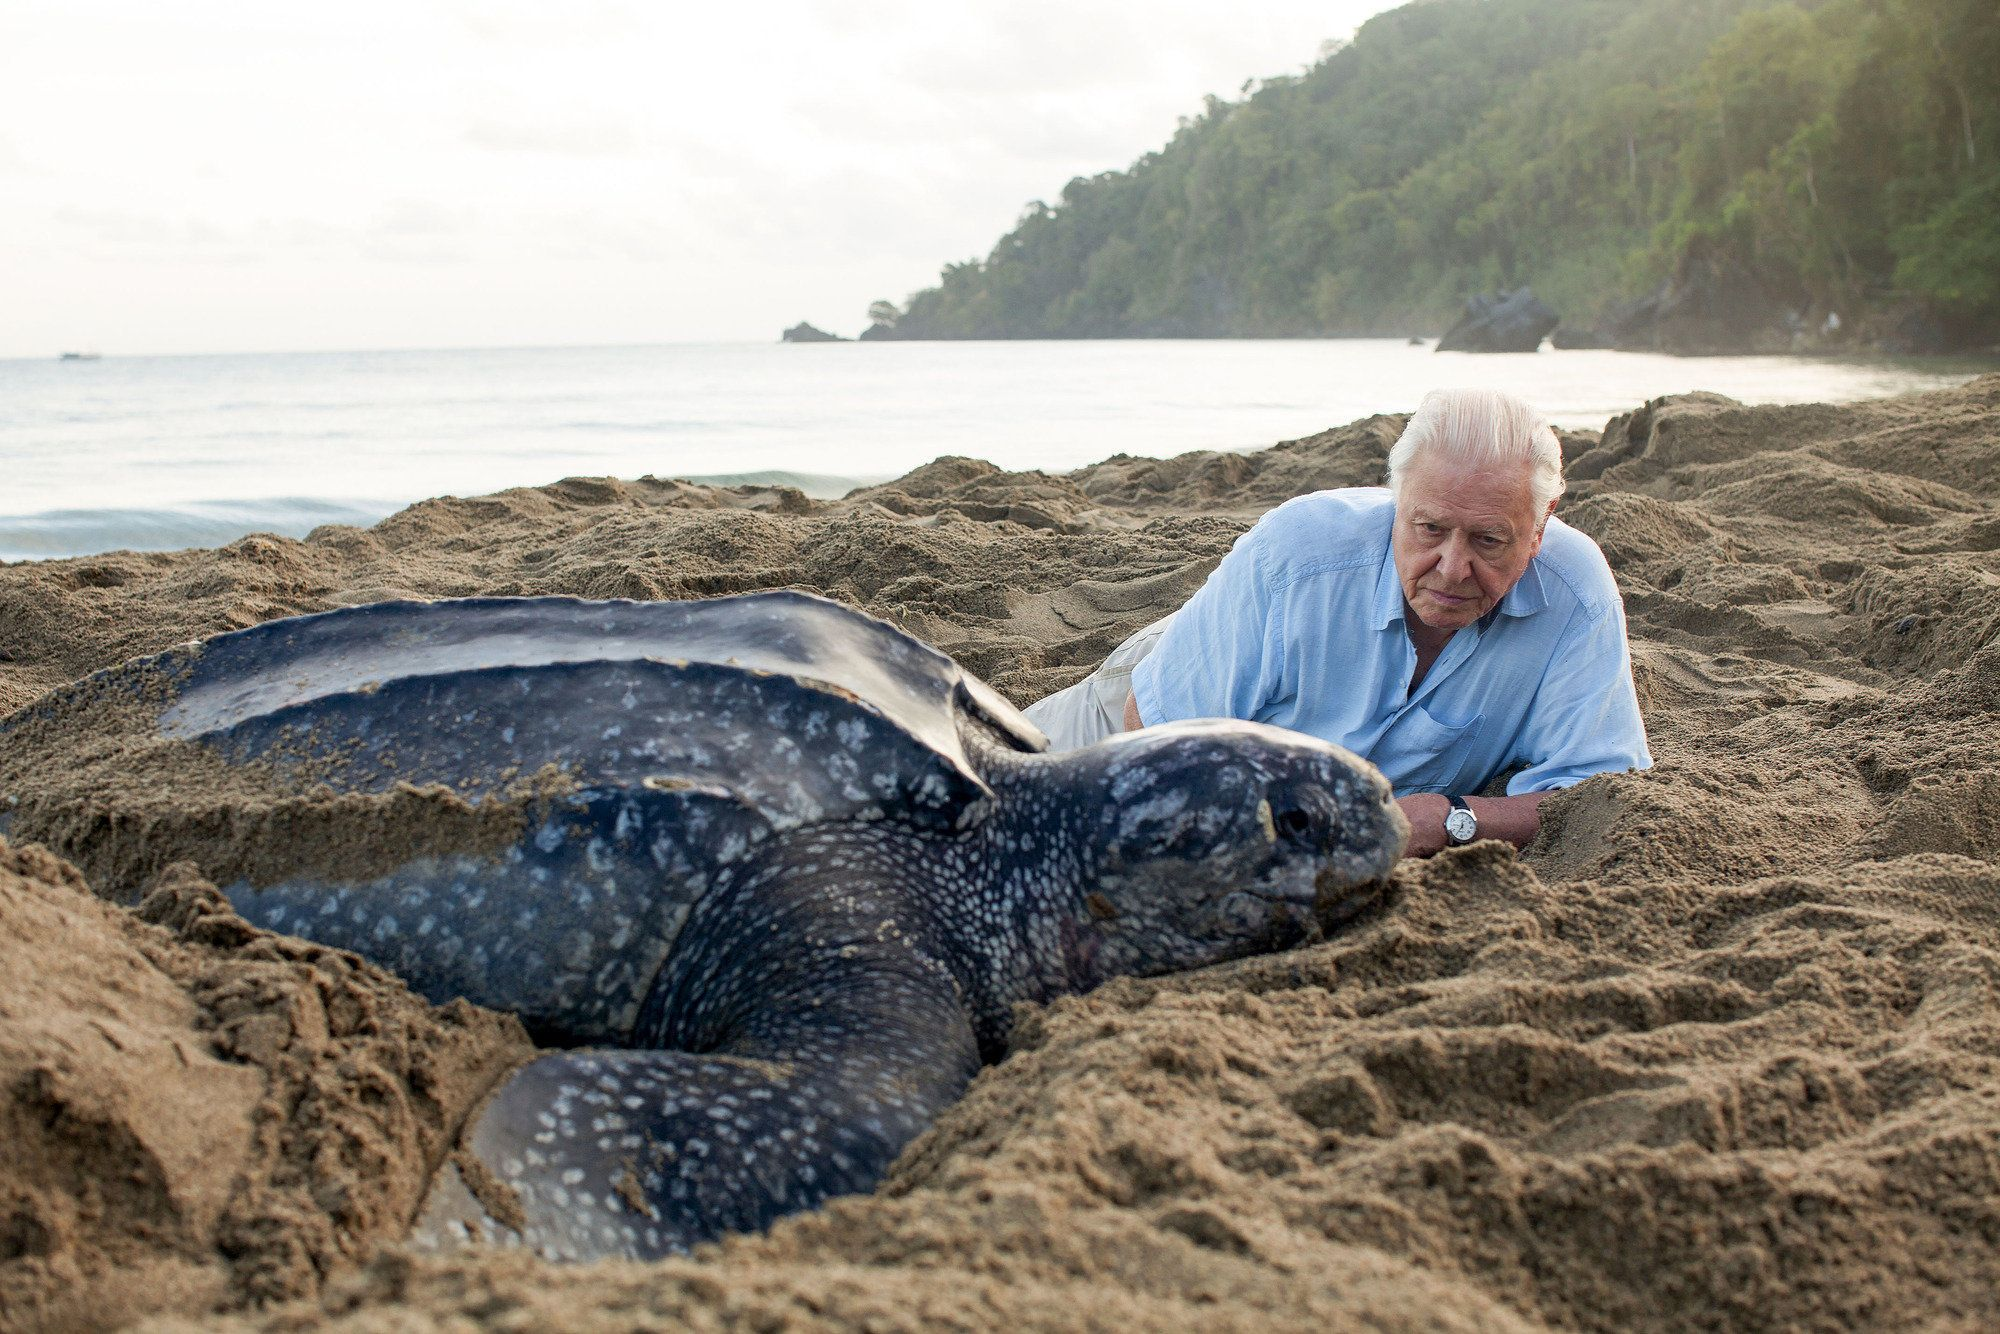 David Attenborough Warns Oceans Are Under Threat 'As Never Before In Human